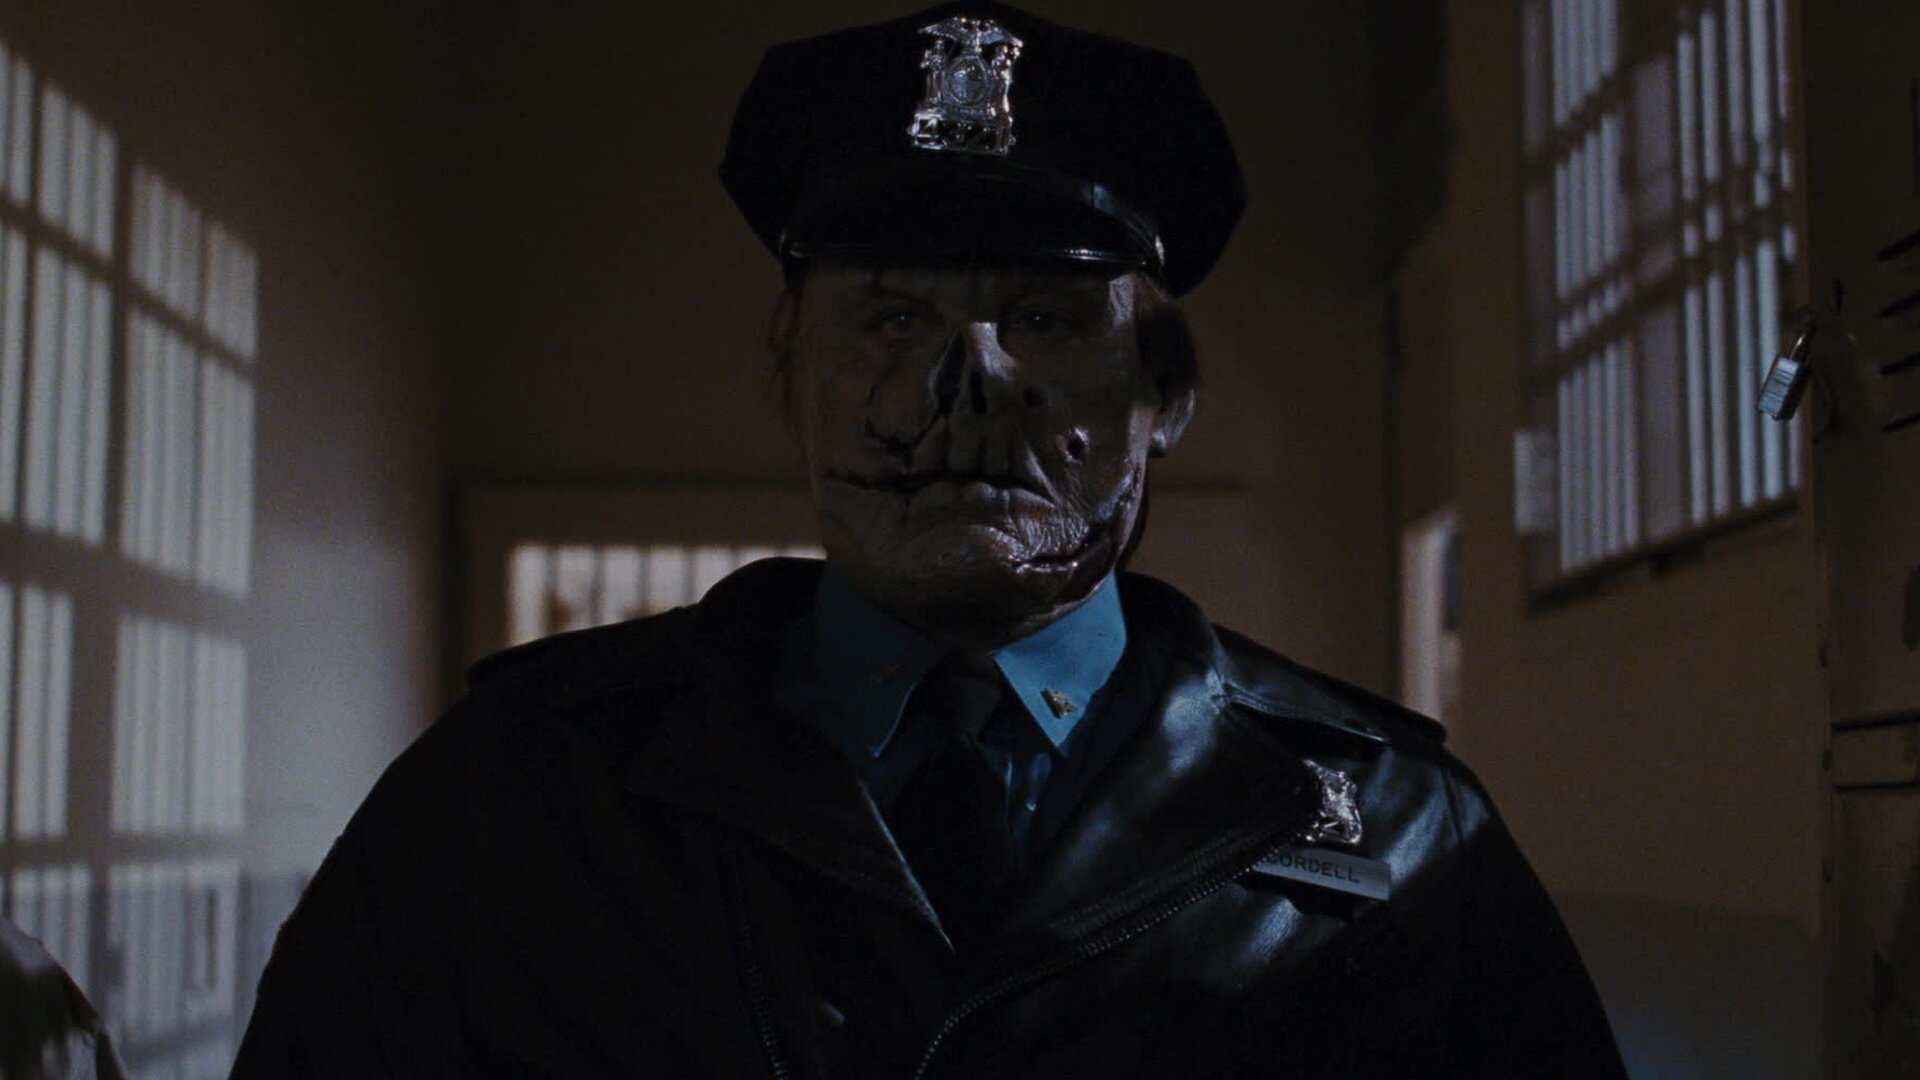 nicolas-winding-refn-is-developing-a-series-adaptation-of-maniac-cop-for-hbo-social.jpg